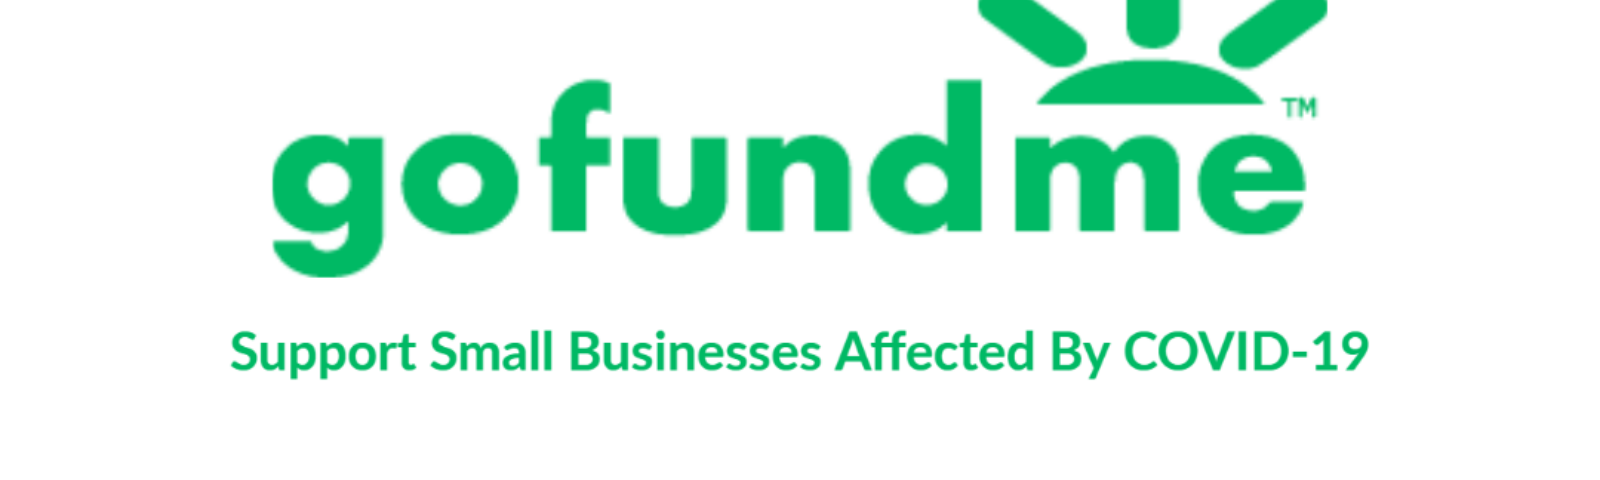 Support Small Businesses Affected By COVID-19